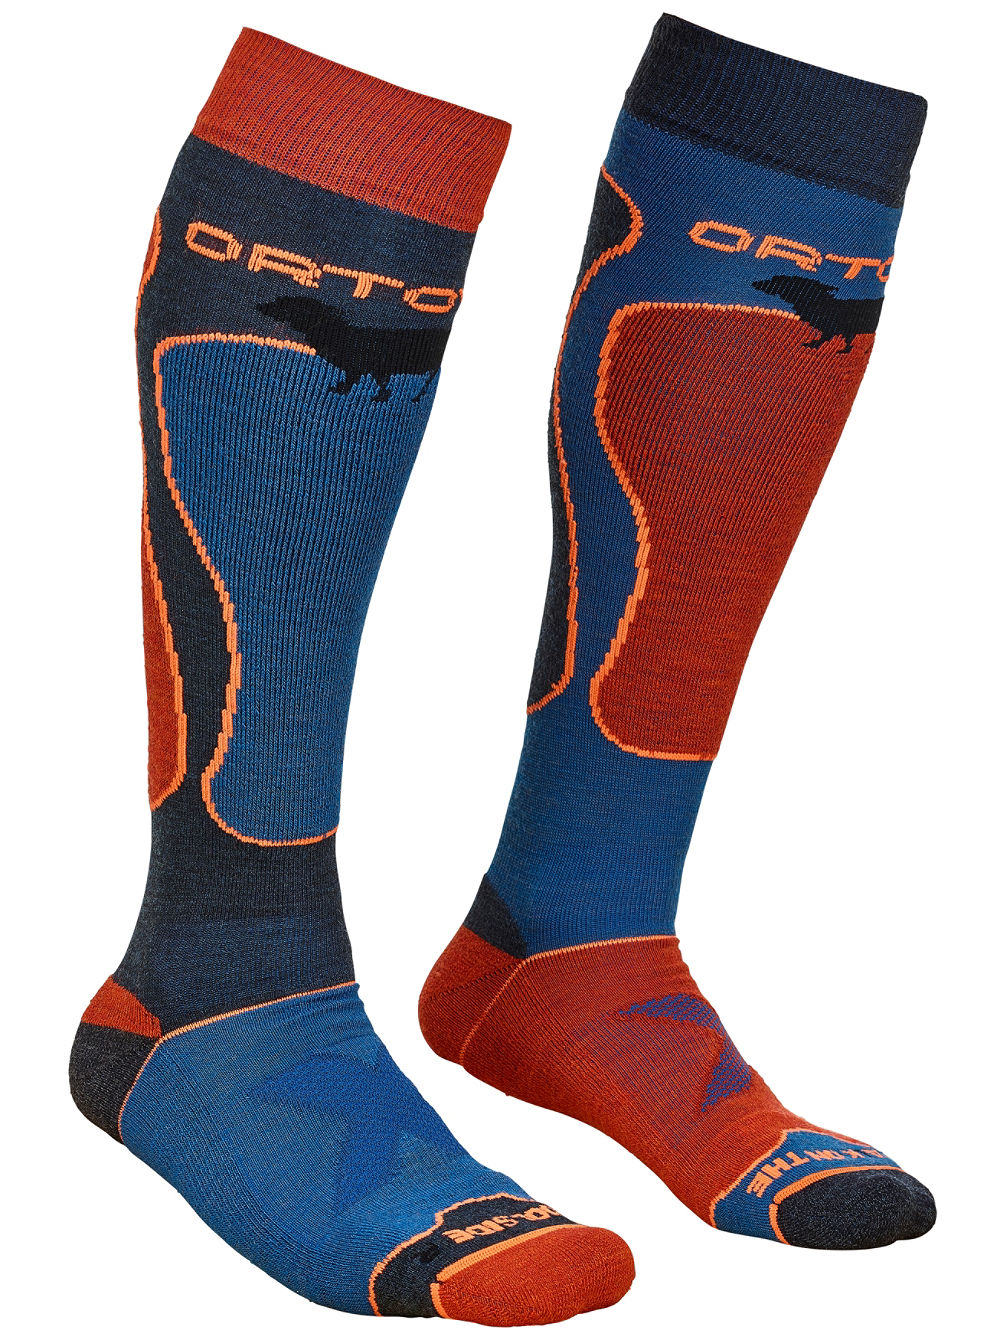 Ski Rock'N'Wool 42-44 Tech Socks